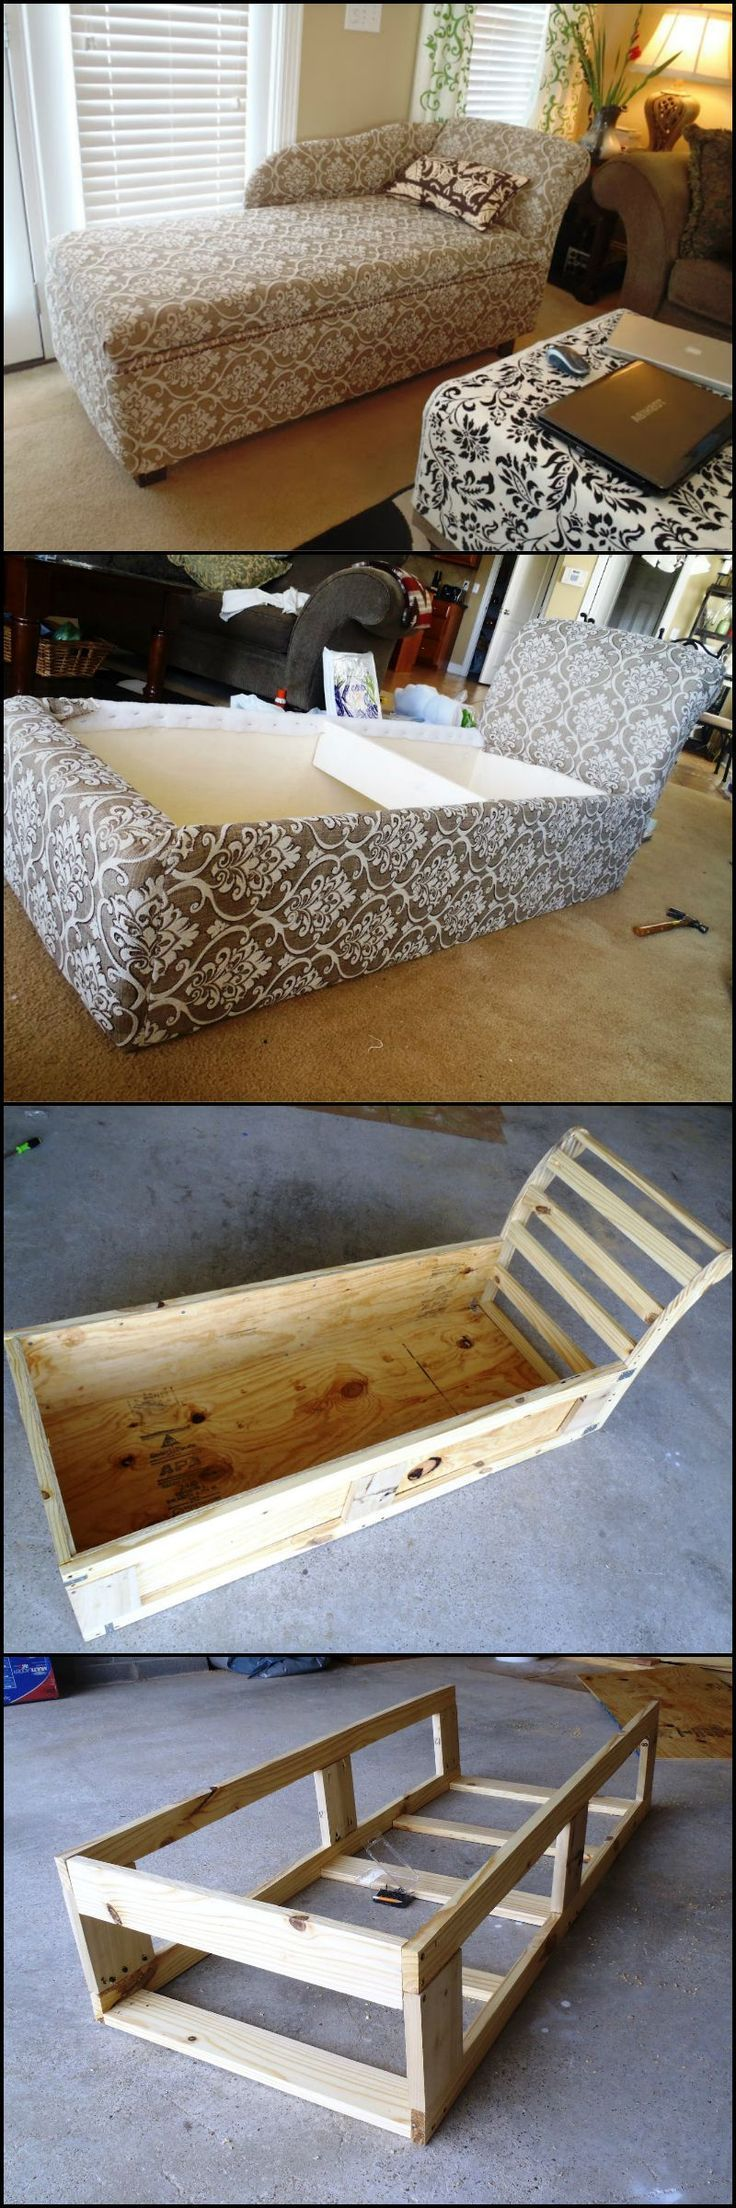 35 super cool diy sofas and couches diy furniture ideas pinterest m bel diy m bel und. Black Bedroom Furniture Sets. Home Design Ideas